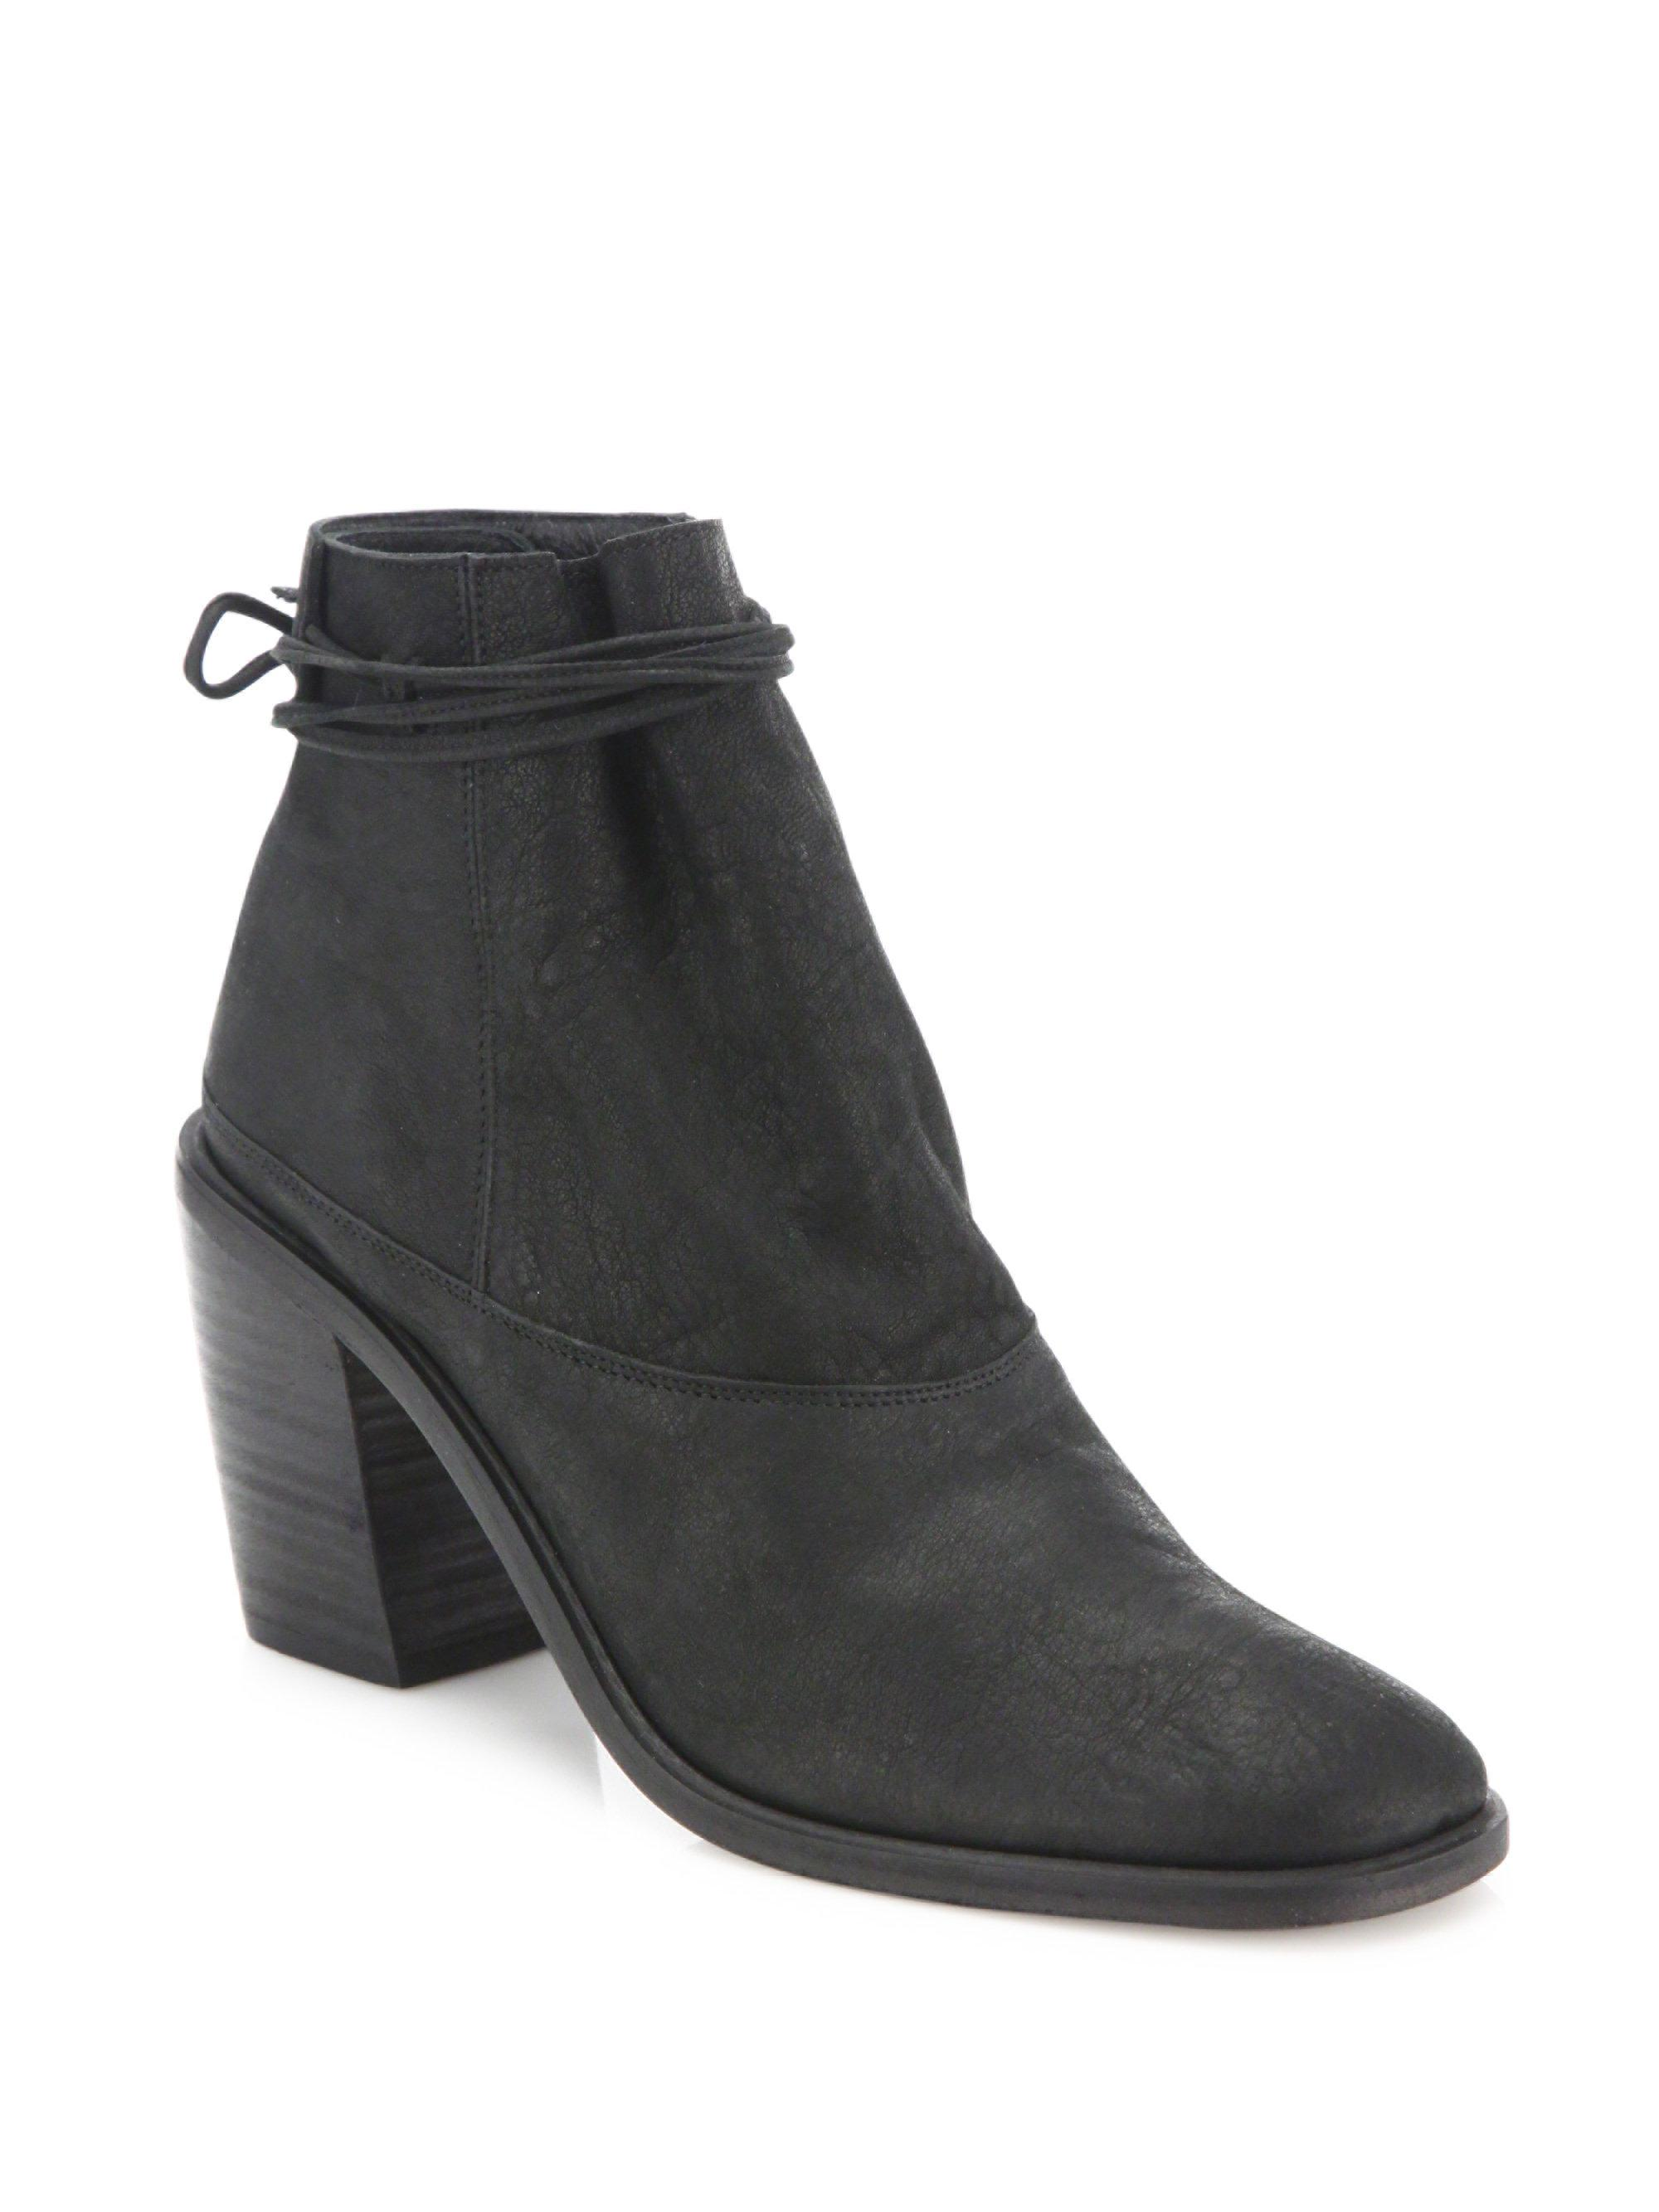 LD Tuttle - Black The Vow Goatskin Ankle Boots - Lyst. View fullscreen